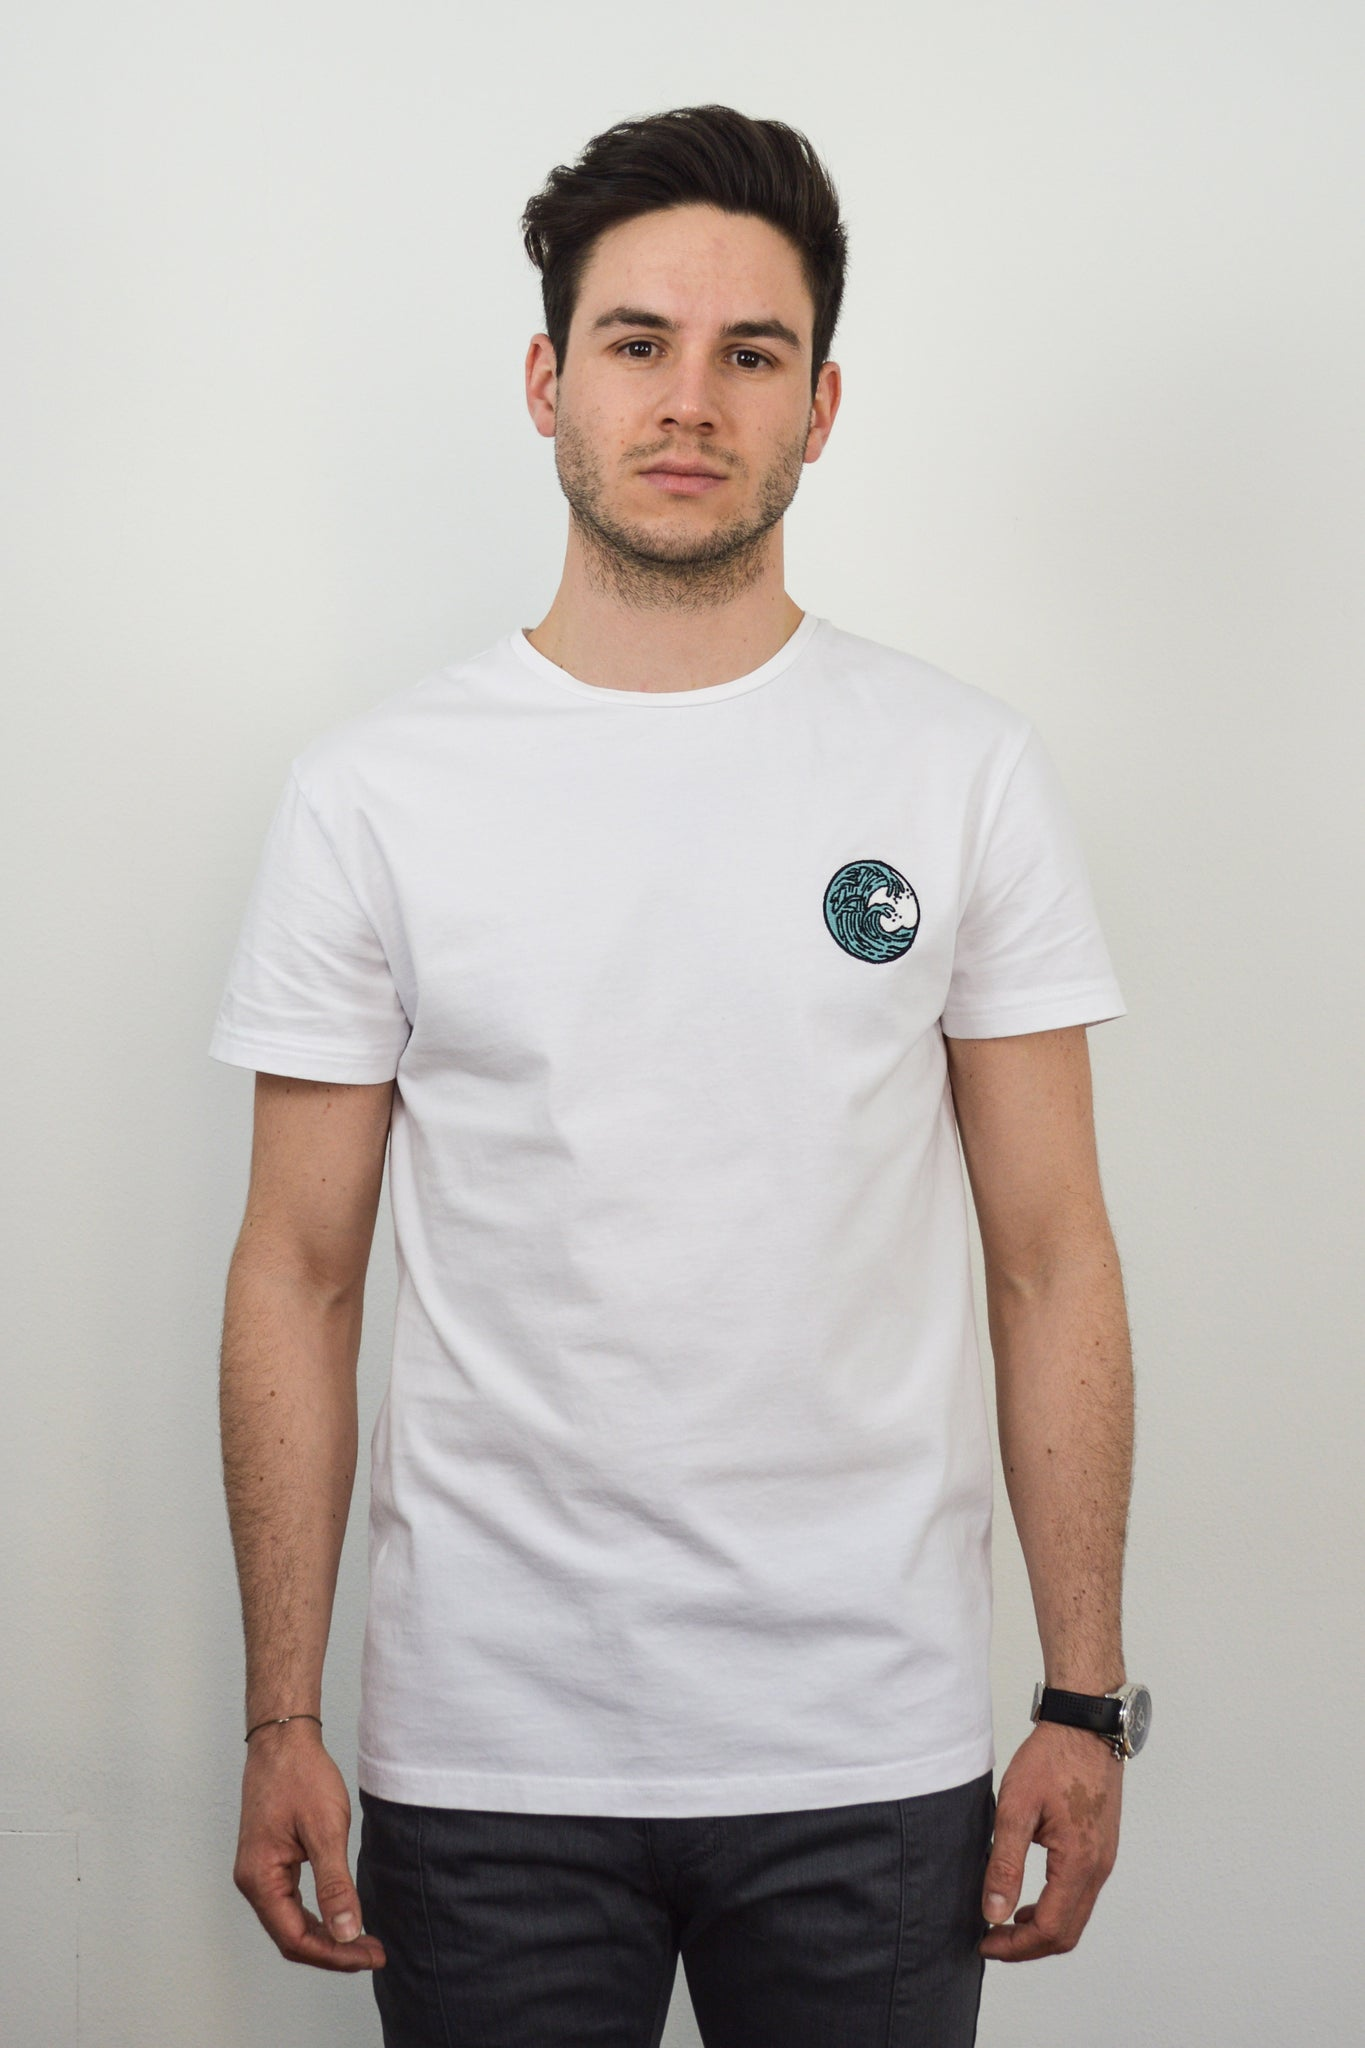 Mick Cotton Tee Unisex